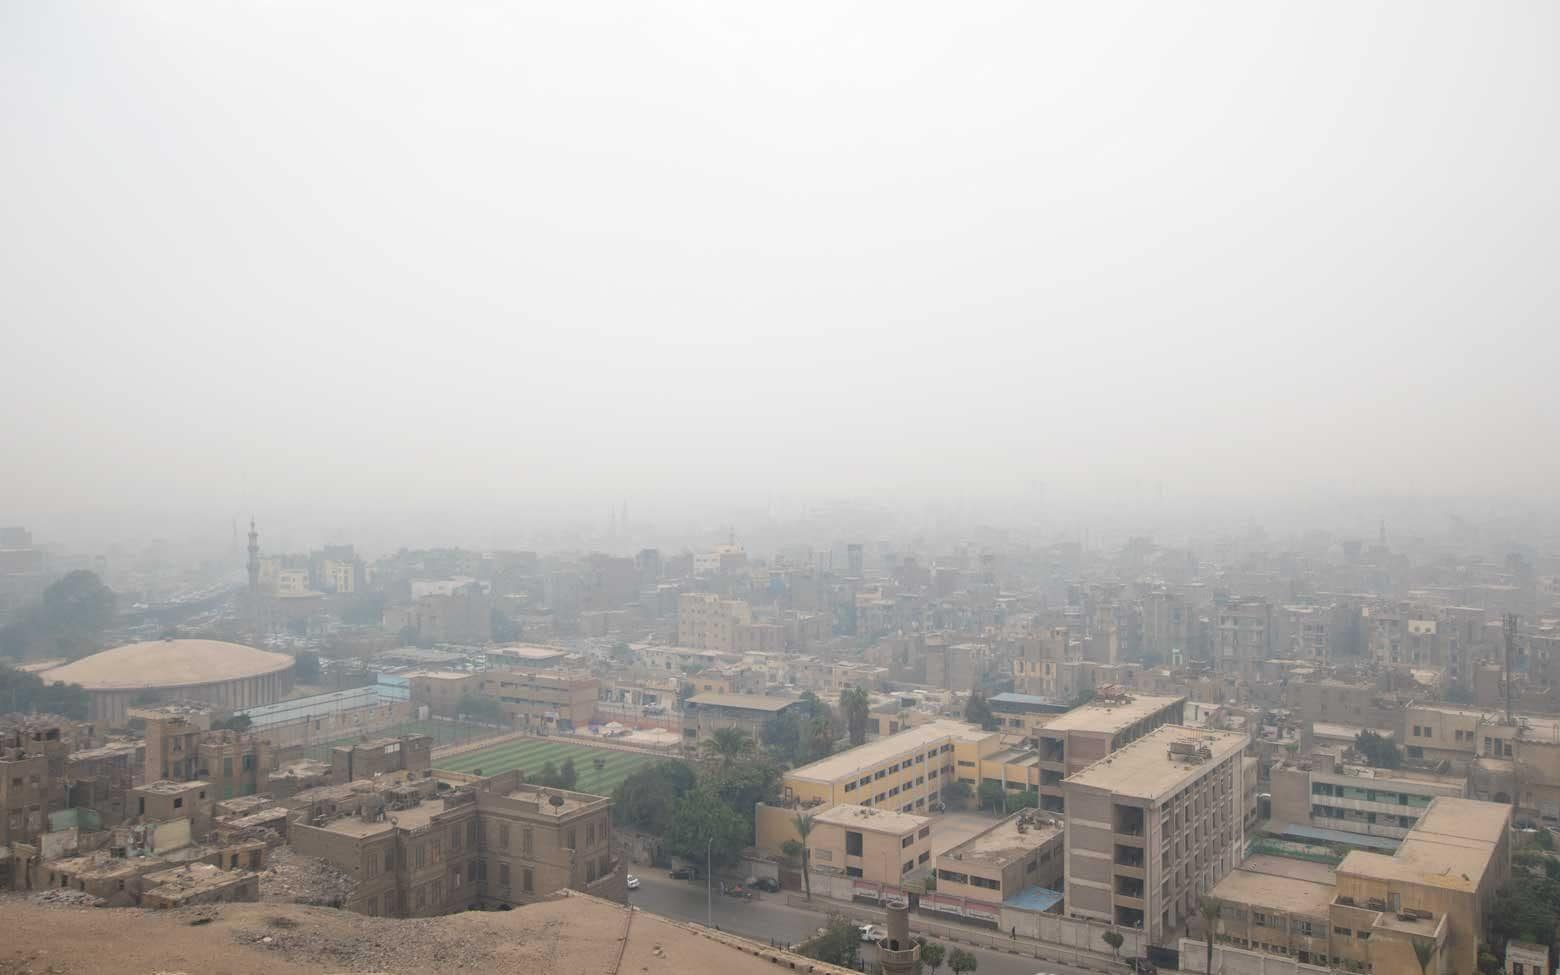 smog in cairo,egypt. View from the citadel